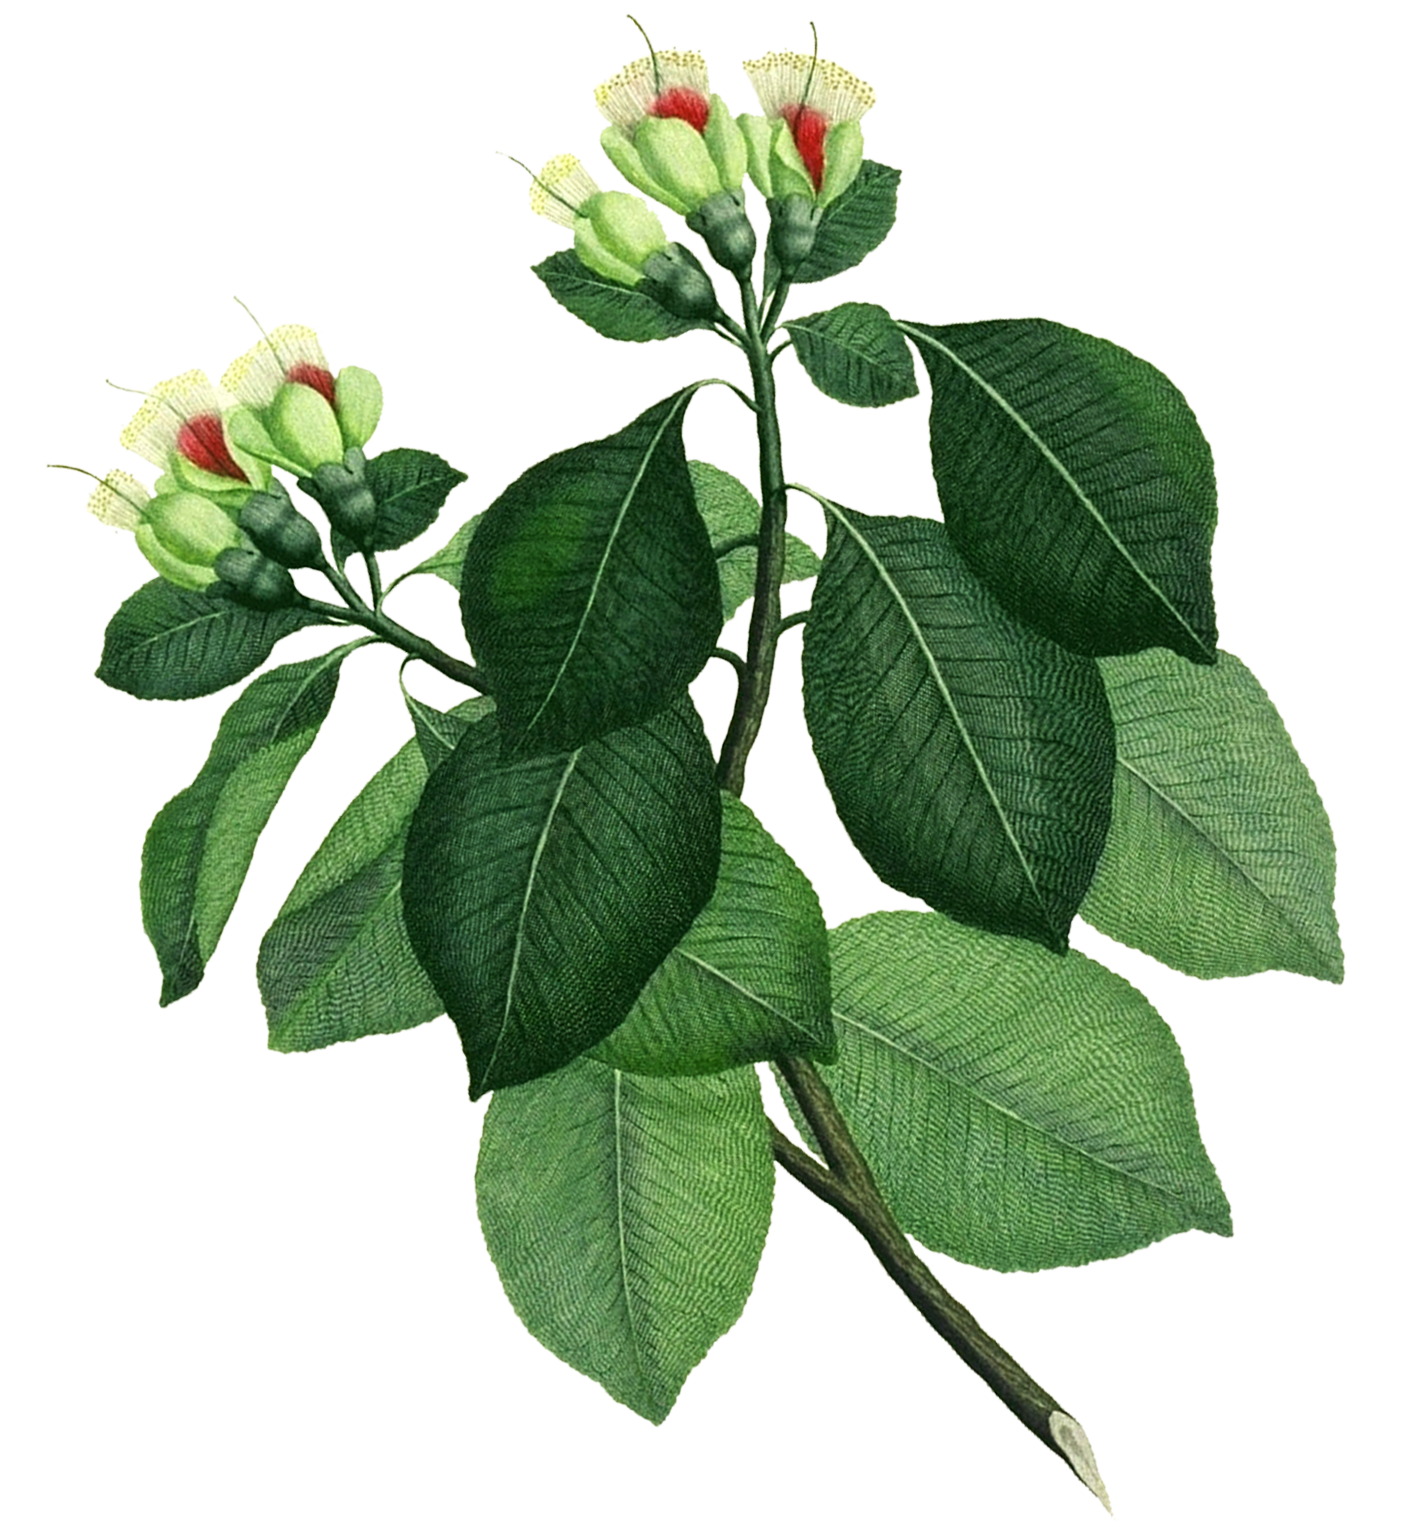 an illustrated plant with several green leaves and 6 flower buds at top